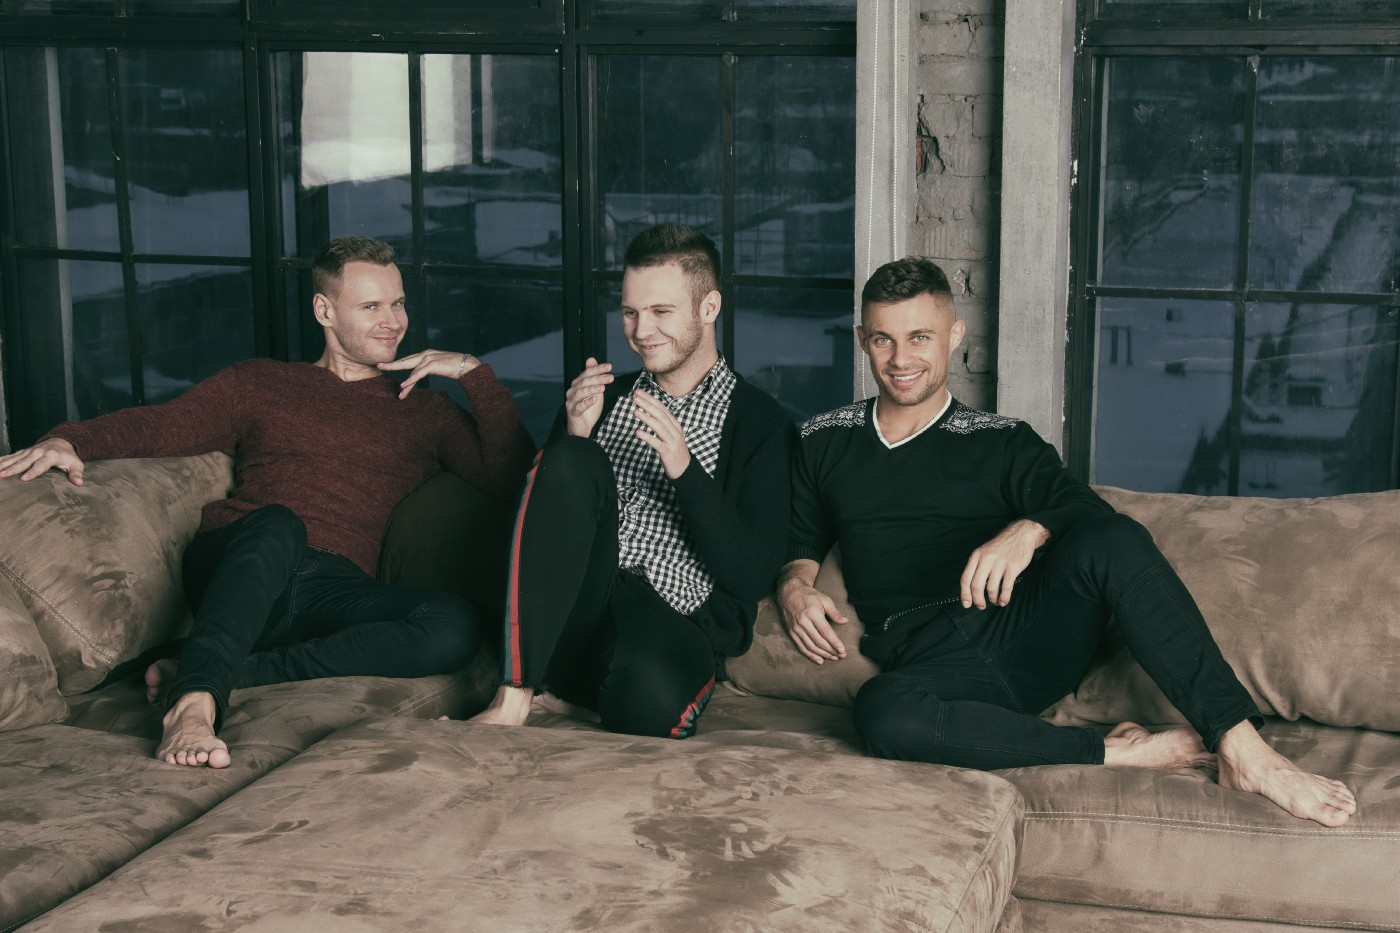 A photo of three handsome, gay men sitting barefoot next to each other on a huge sofa.